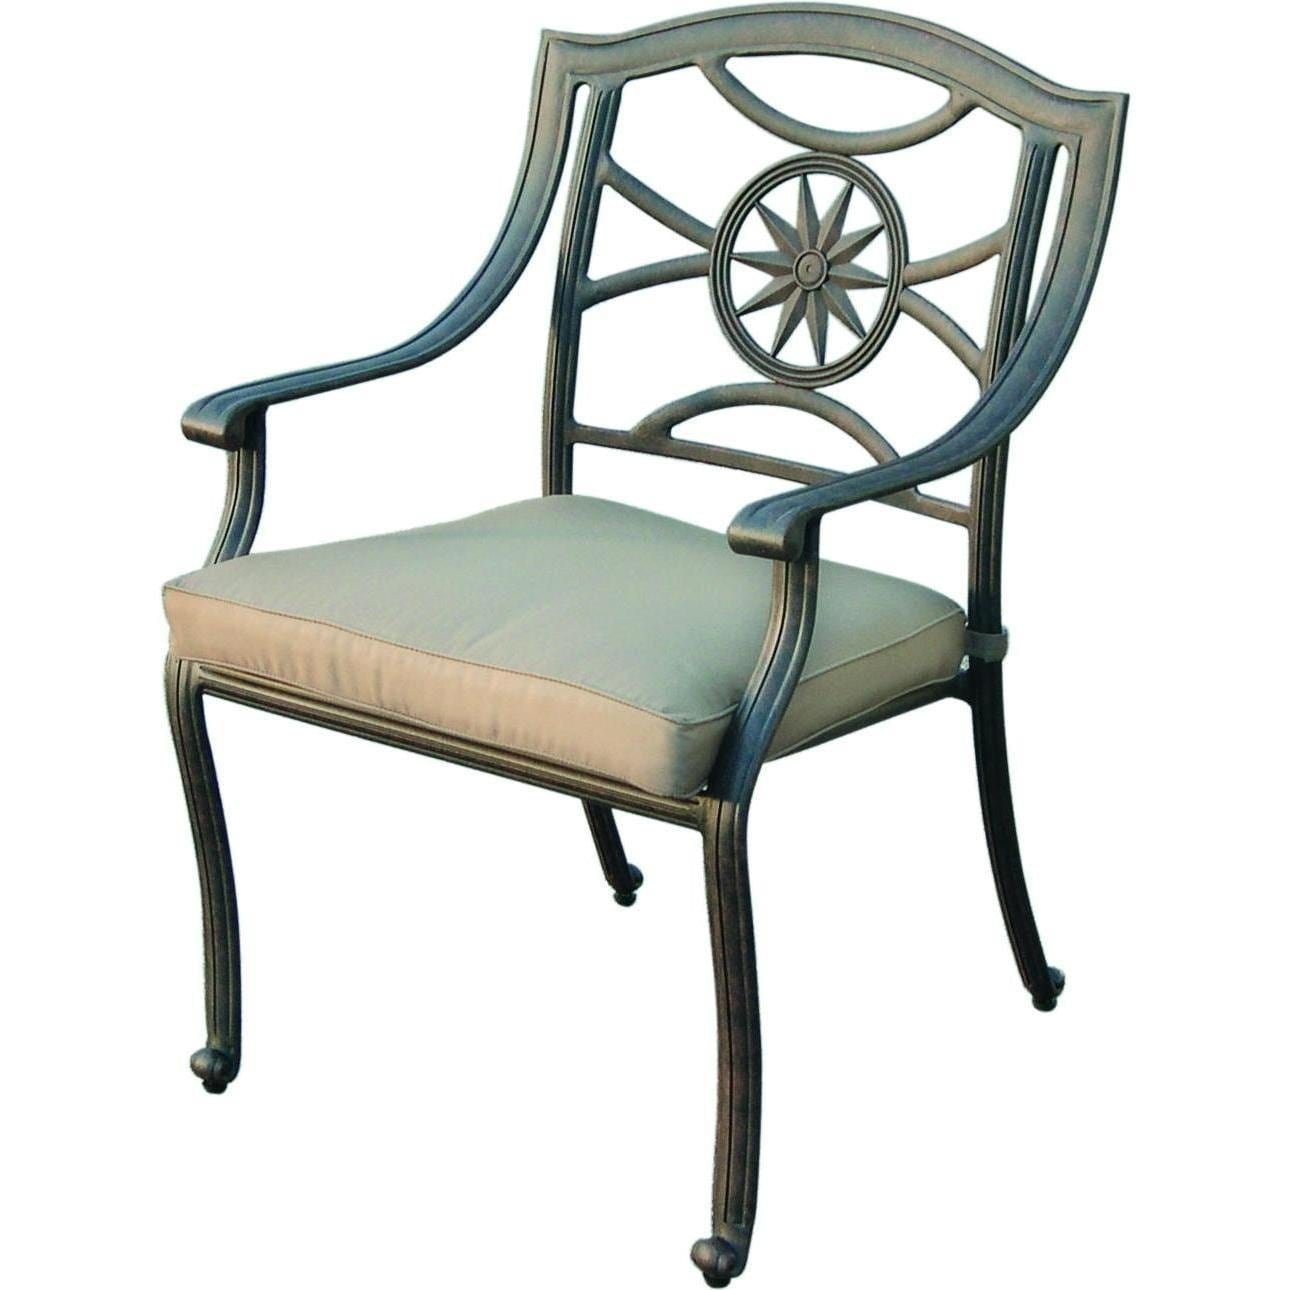 tall patio chairs with arms comfy lounge for bedroom darlee ten star cast aluminum dining chair bbq guys